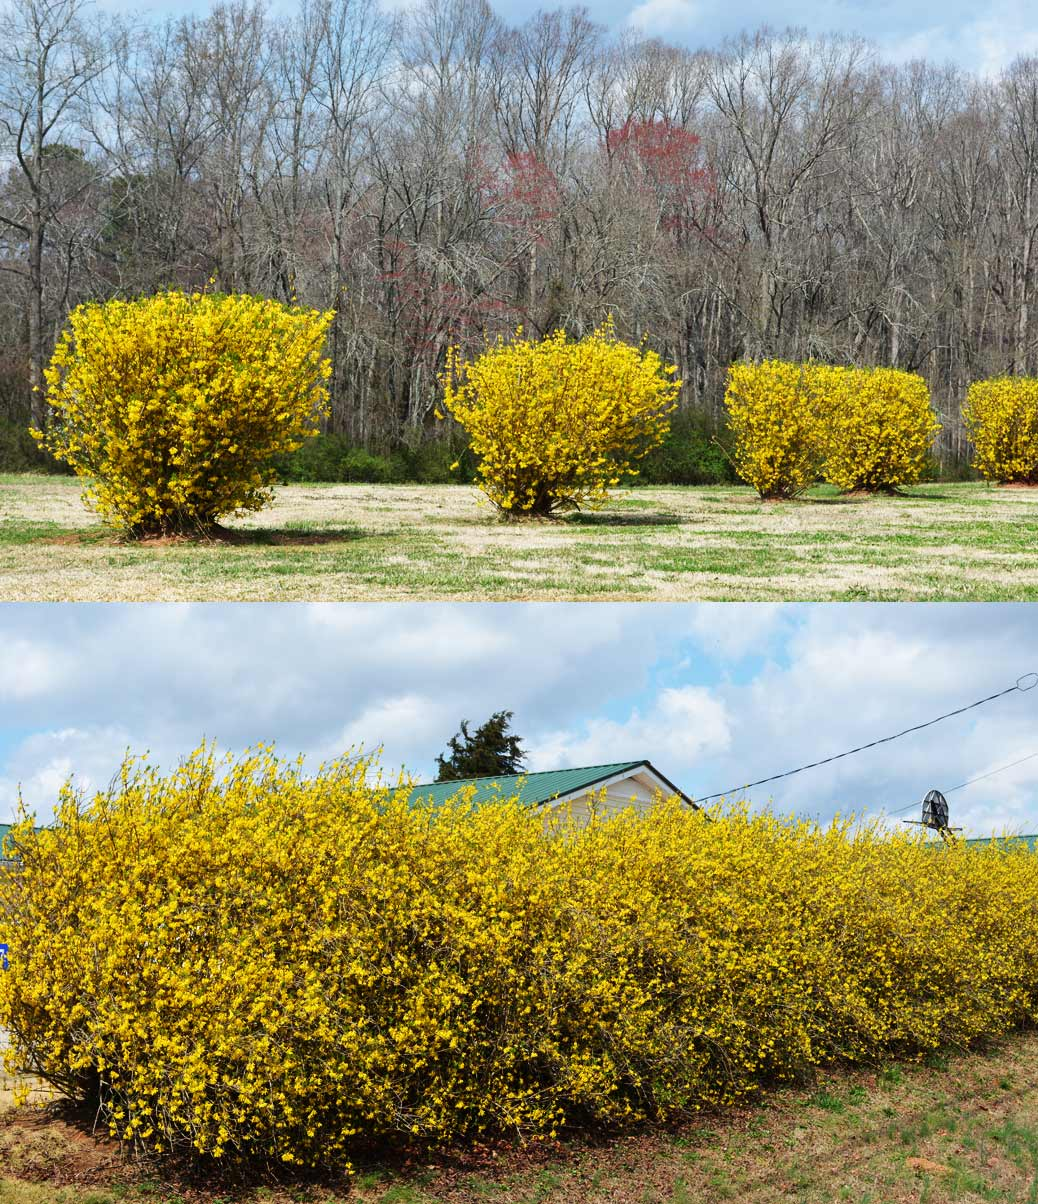 Forsythia as splendid informal hedge (bottom). Branching/leaf size/density do not lend to tight pruning.